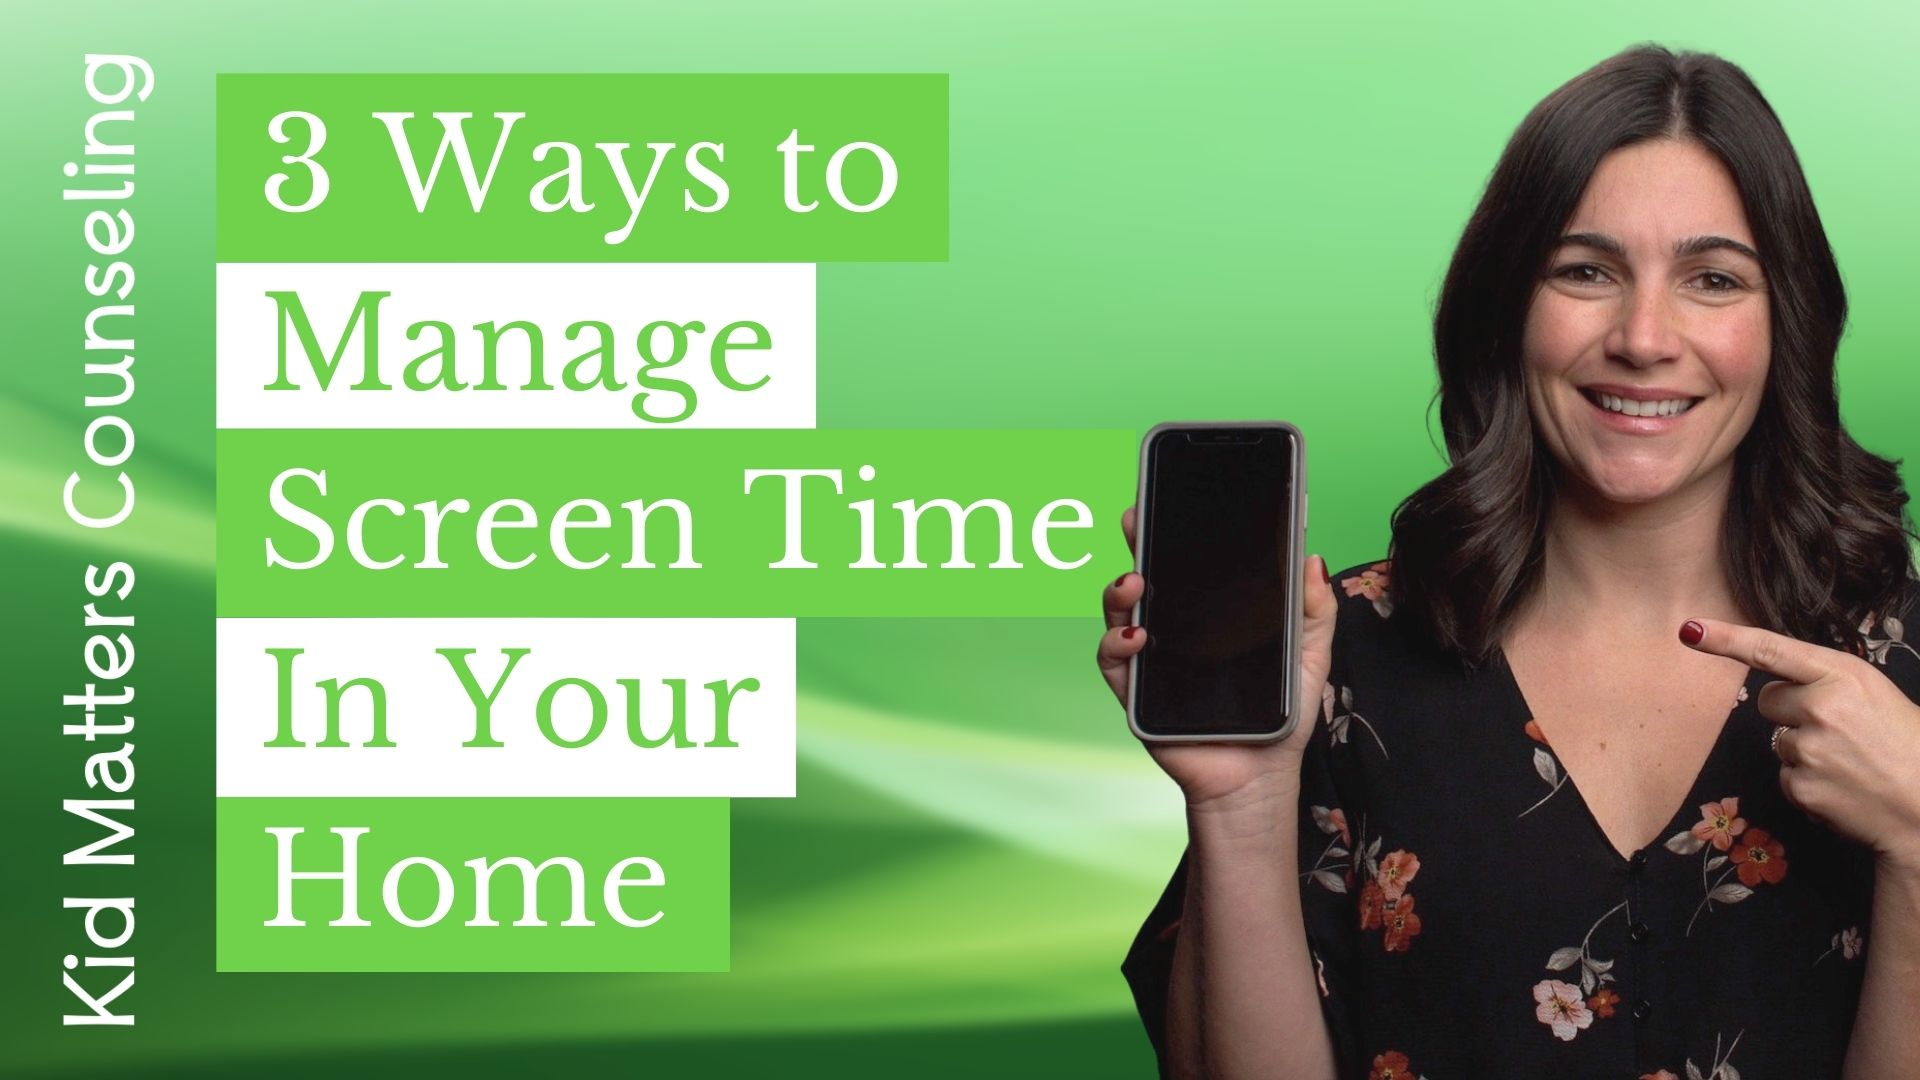 3 Ways to Manage Screen Time in Your Home